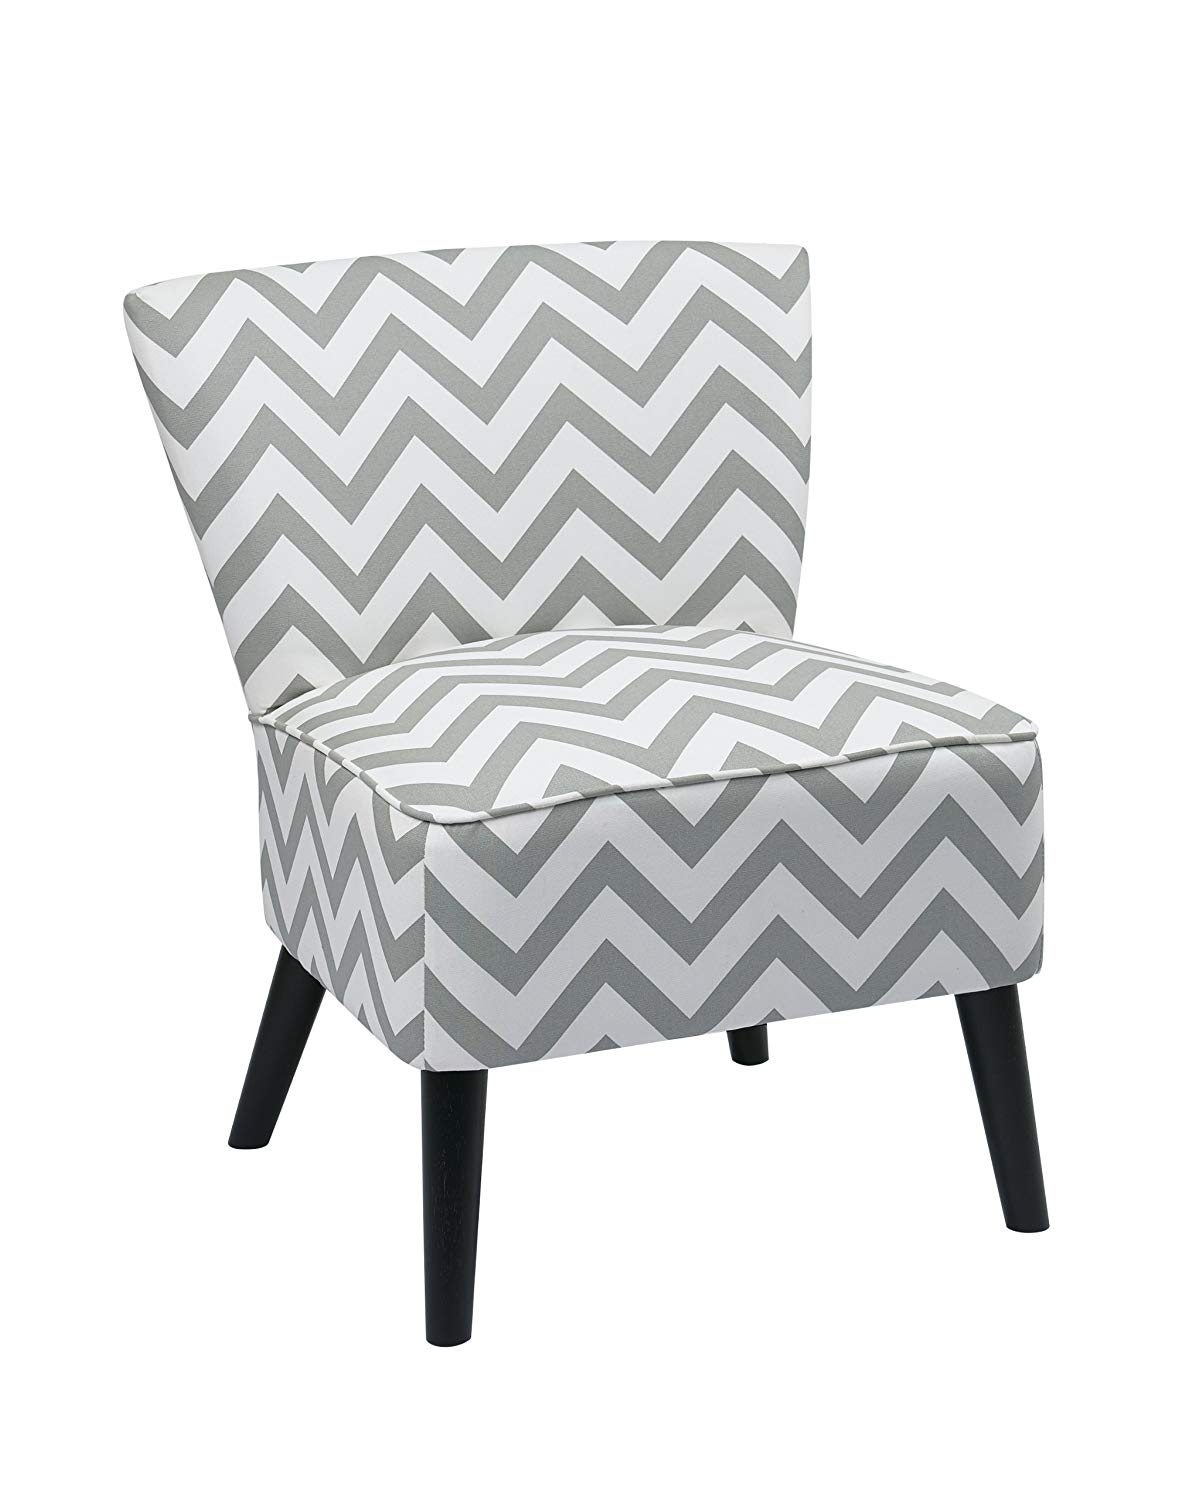 Groovy Cheap Zag Chair Find Zag Chair Deals On Line At Alibaba Com Short Links Chair Design For Home Short Linksinfo